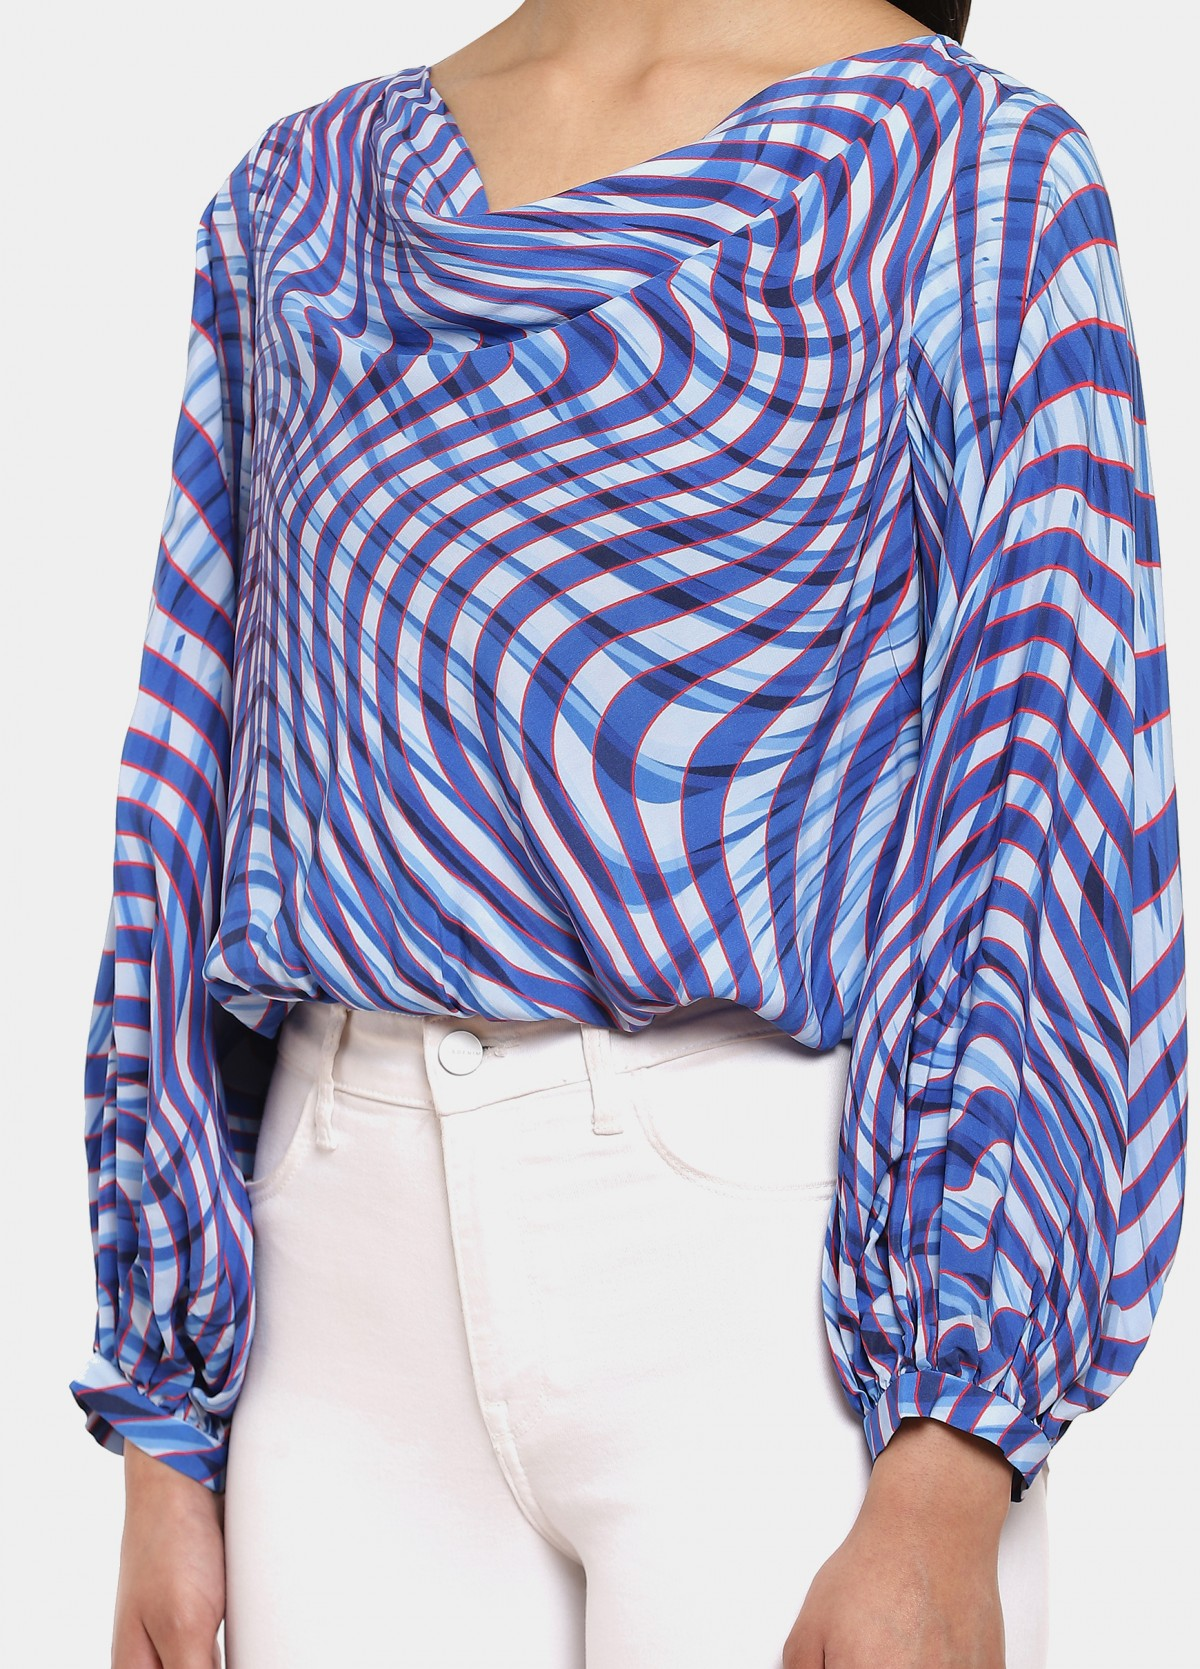 The Moody Blues Top